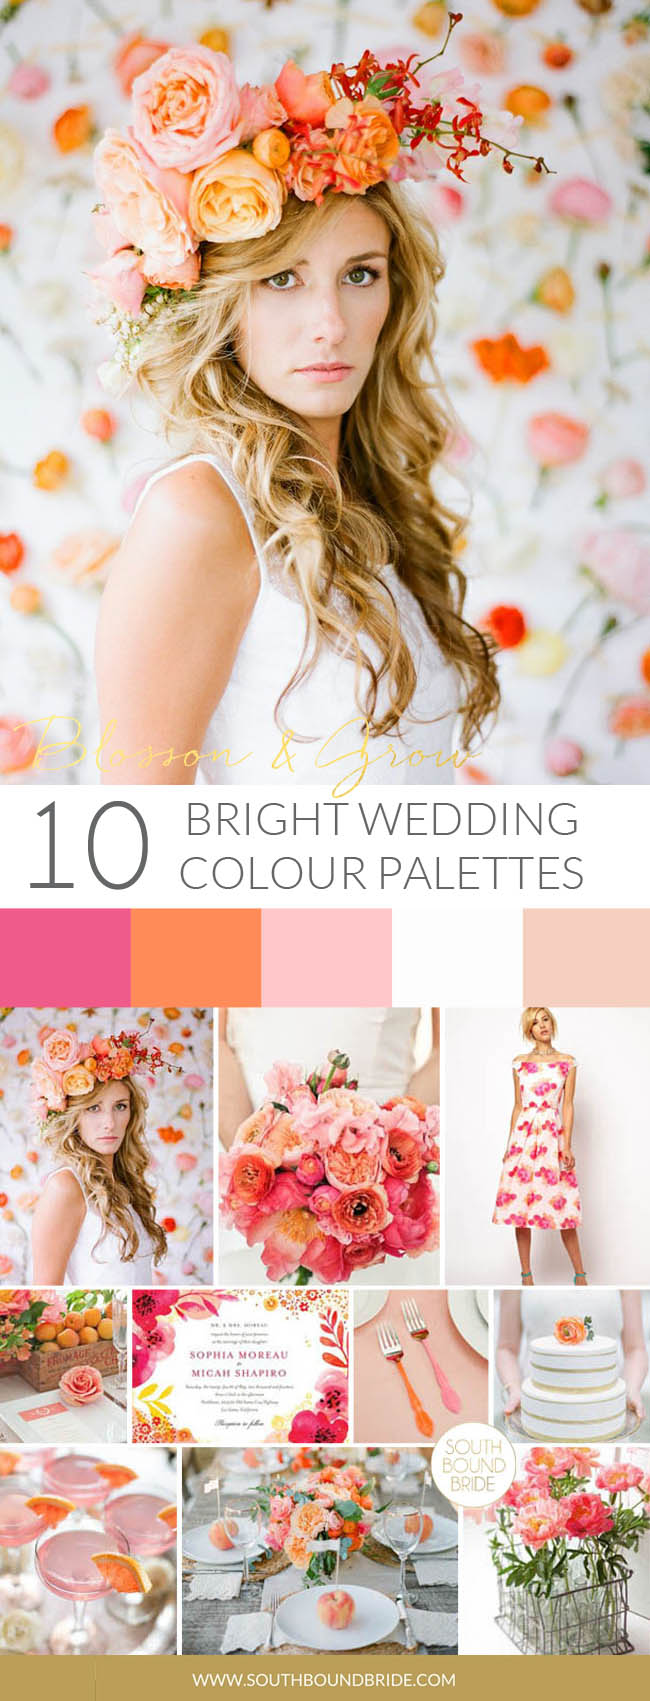 Blossom & Grow Colorful Wedding Palette